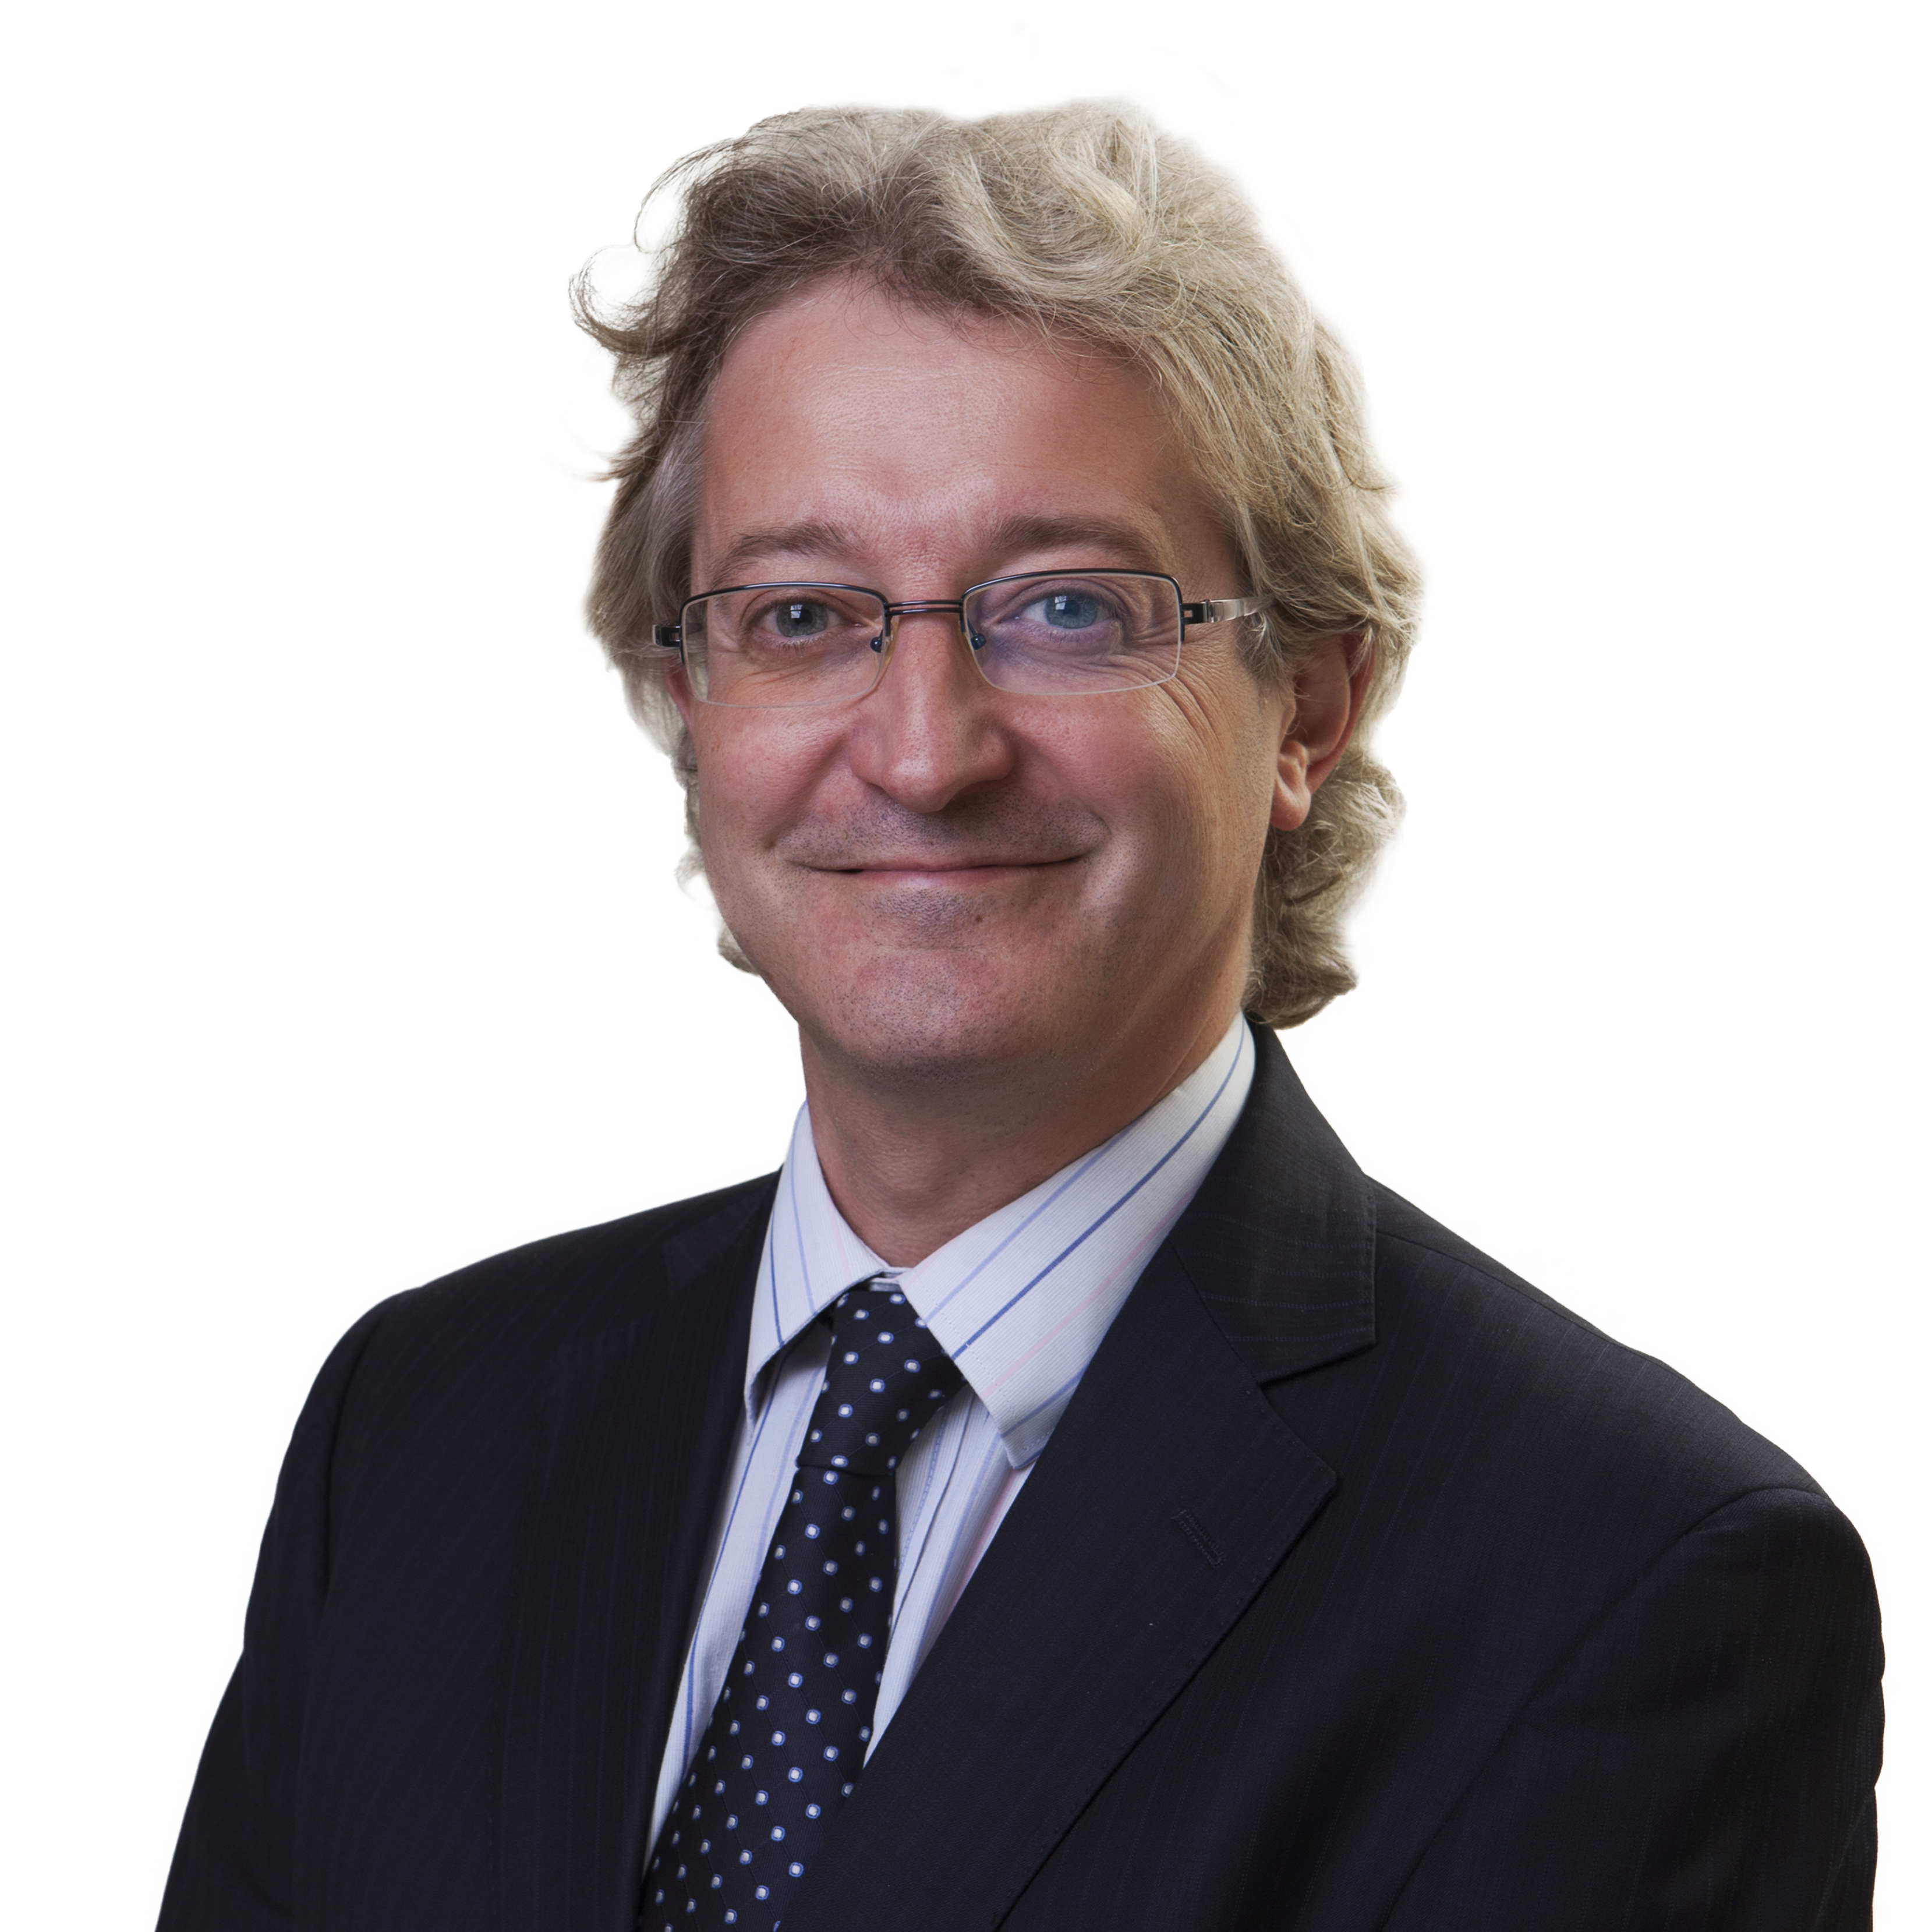 Christopher Noblet, Partner, Partos & Noblet, in co-operation with Hogan Lovells International LLP.